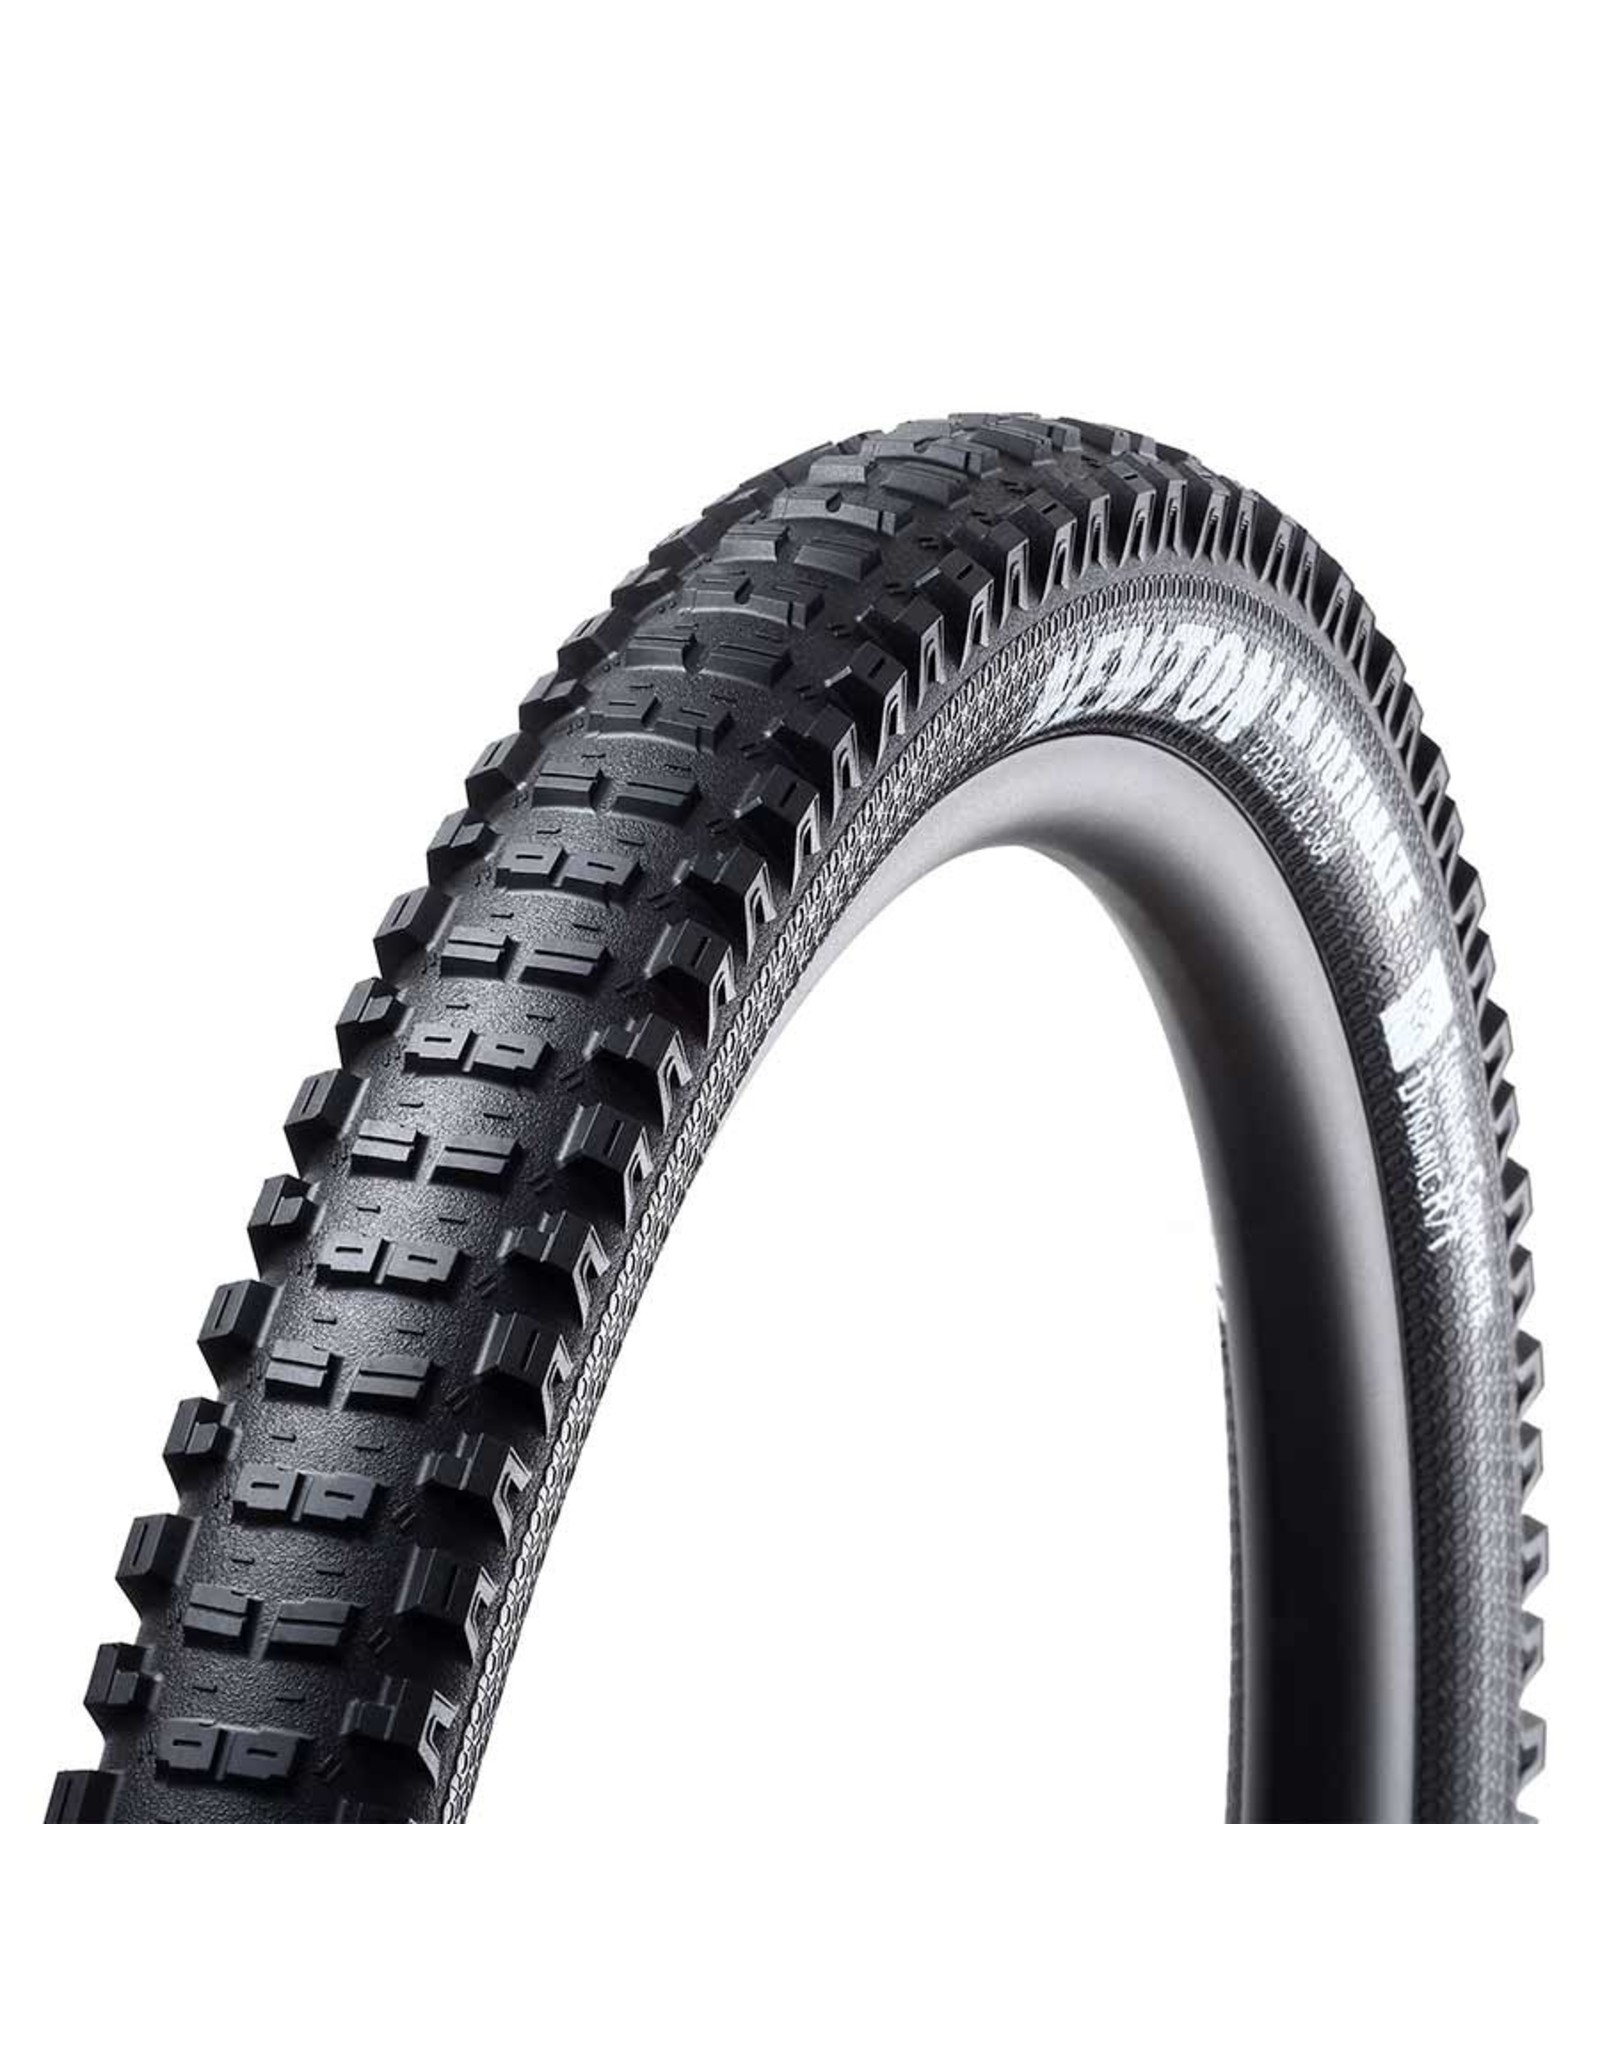 Goodyear Goodyear, Newton, Tire, 27.5''x2.40, Folding, Tubeless Ready, Dynamic:R/T, EN Ultimate, 240TPI, Black